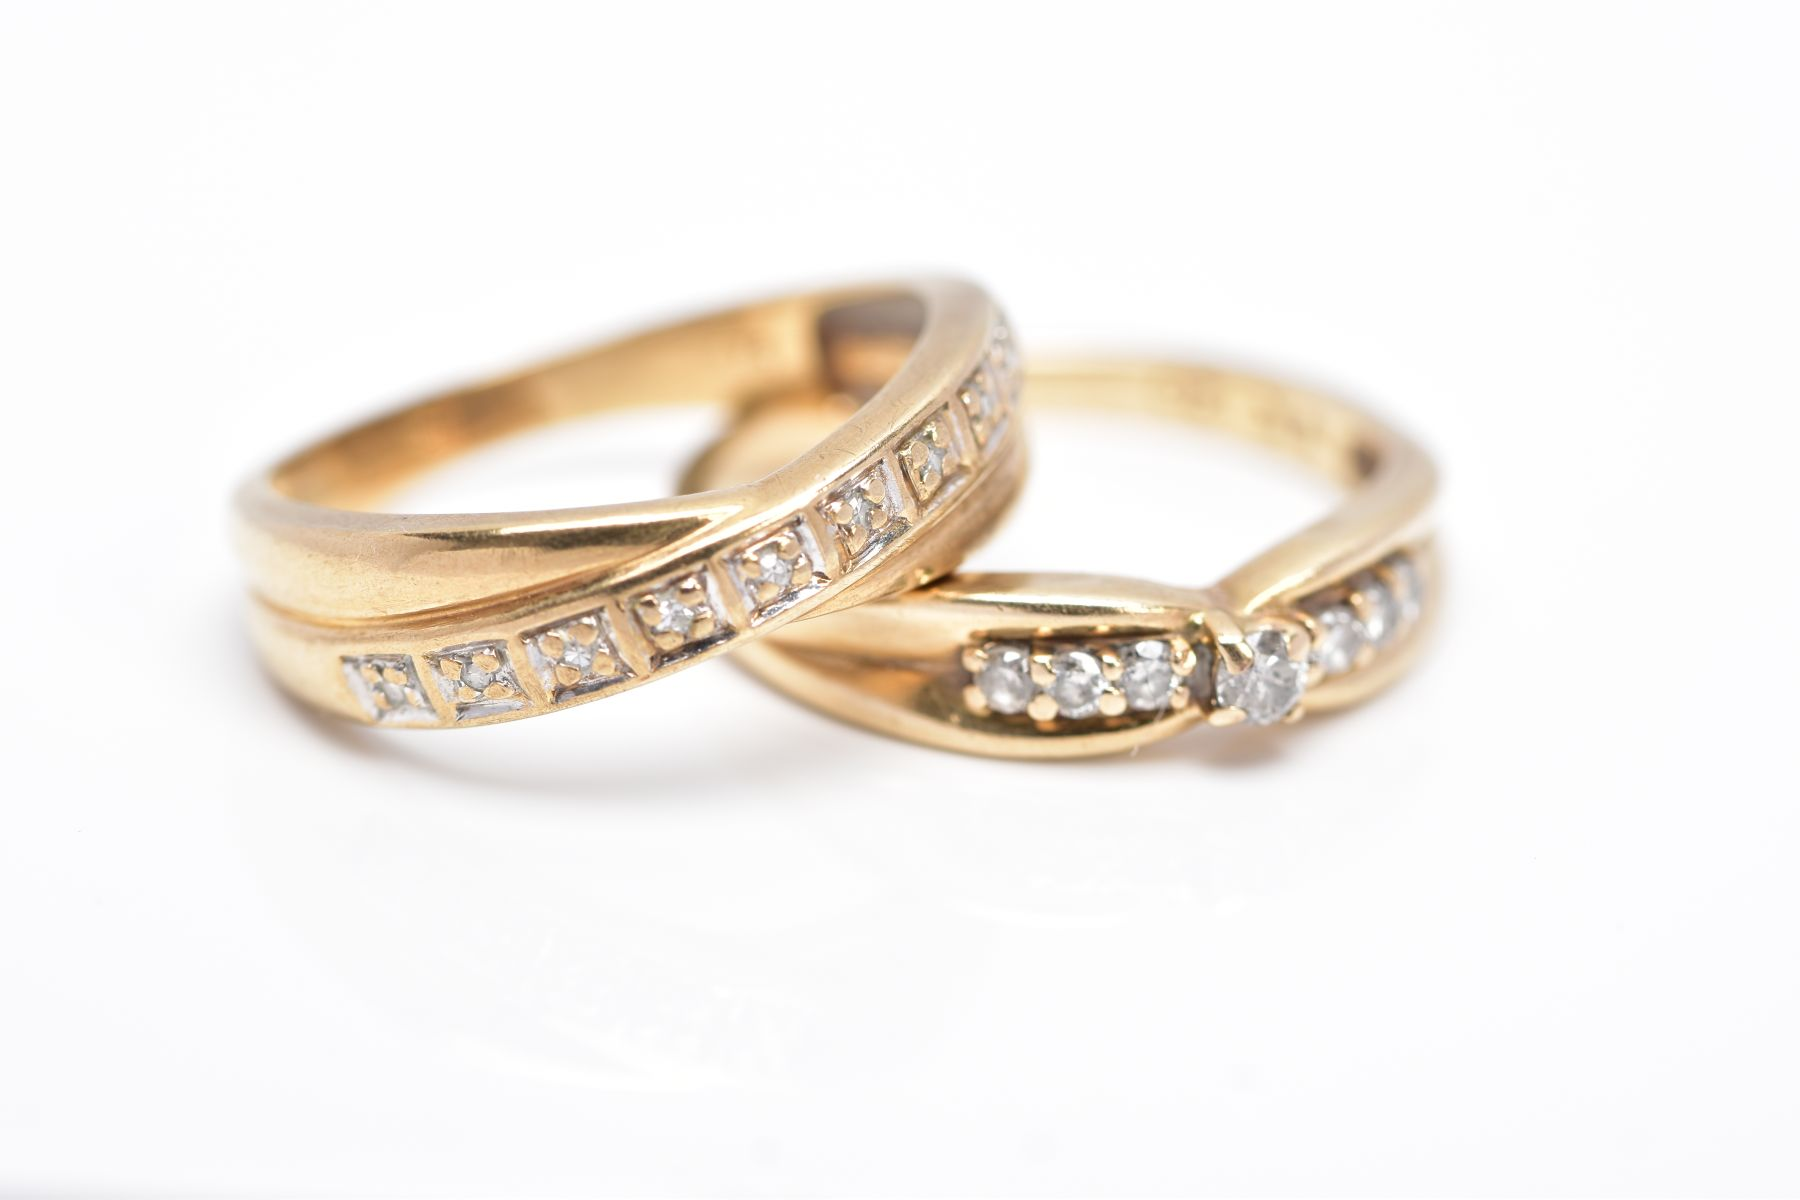 TWO 9CT GOLD DIAMOND RINGS, the first designed with a row of seven round brilliant cut diamonds, - Image 3 of 5